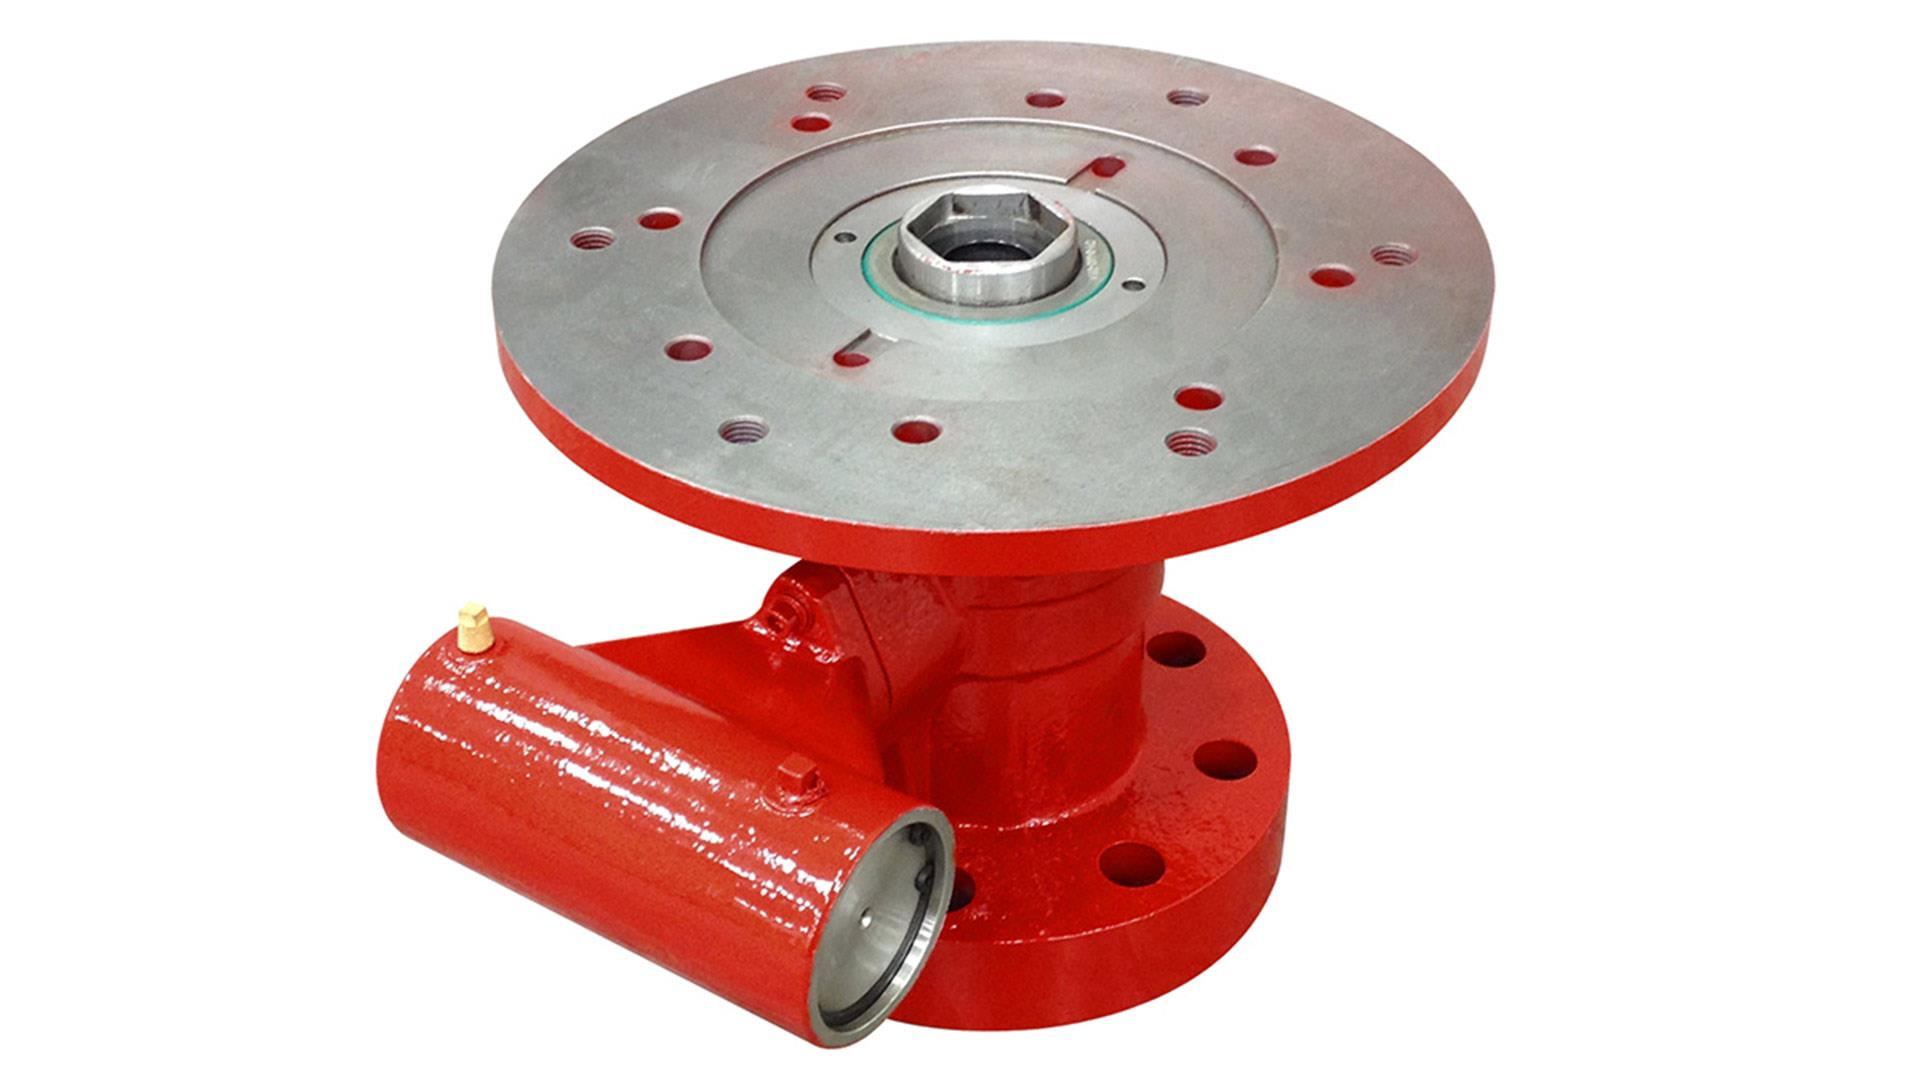 A render of a Leak-Free Stuffing Box